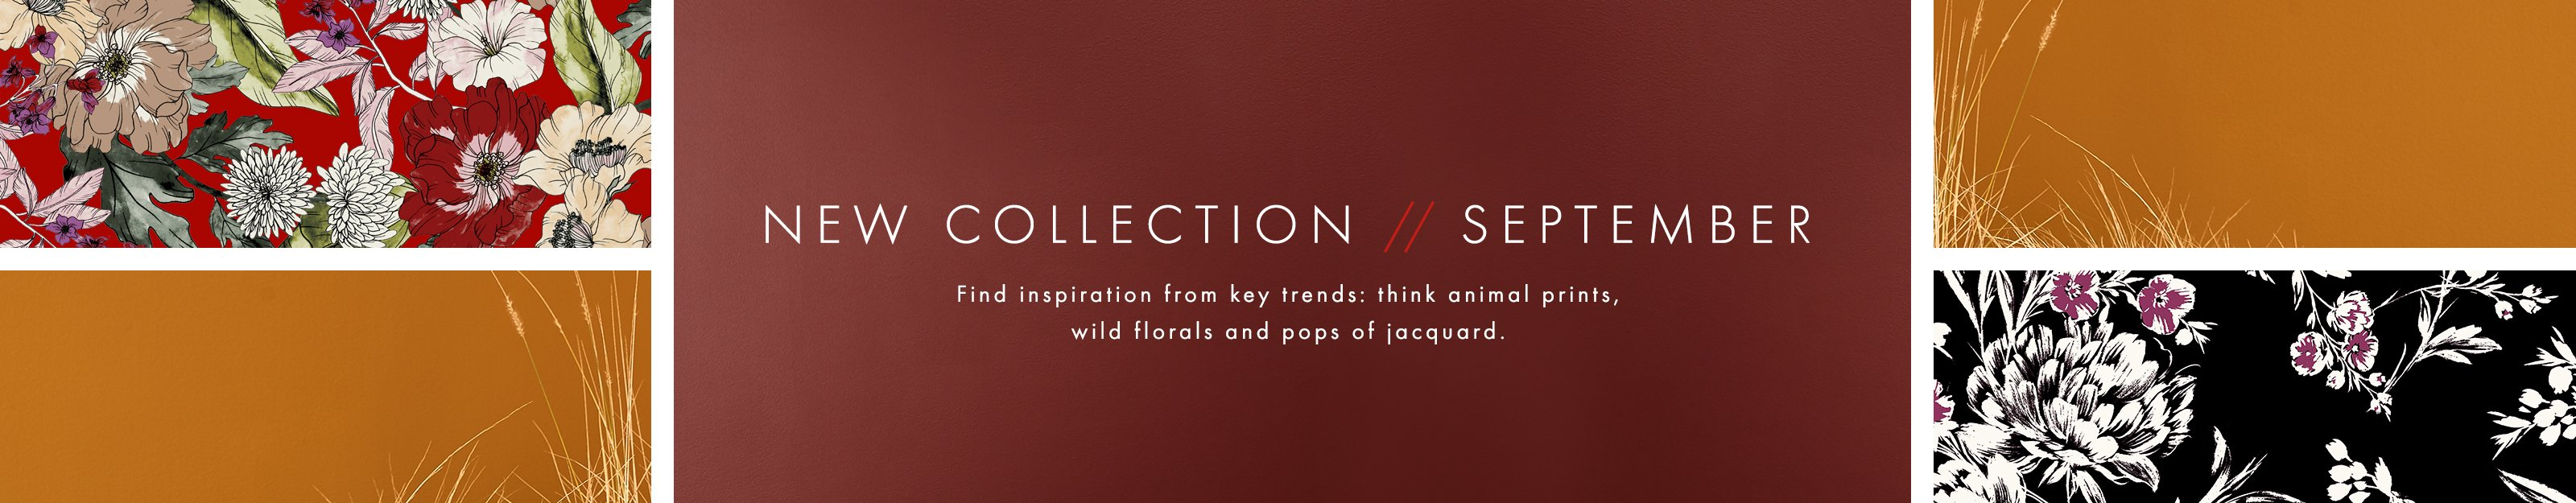 New Collection September Find inspiration from key trends: think animal prints, wild florals and pops of jacquard.